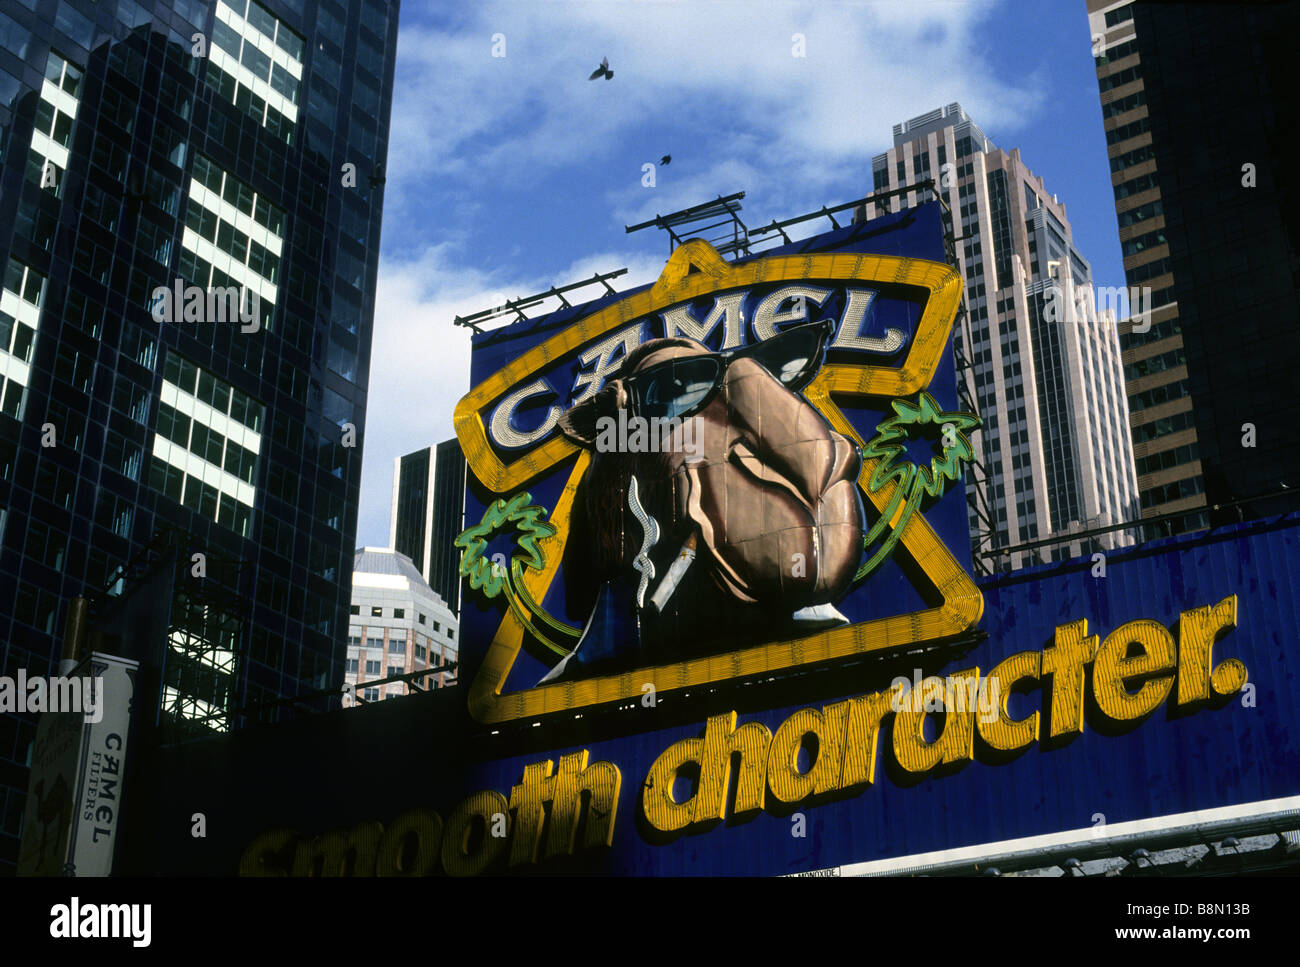 25471755 Joe Camel on a Camel Cigarettes Advertising Billboard in Times Square  Midtown Manhattan - Stock Image